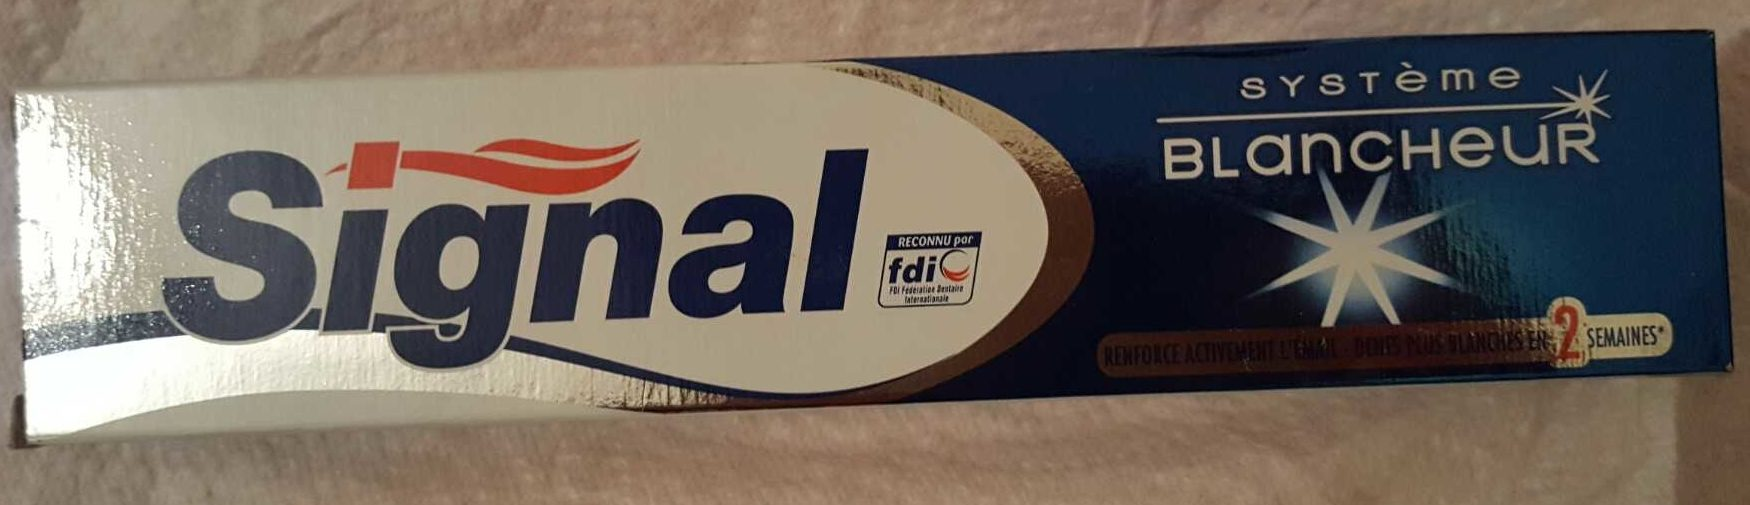 Dentifrice - Product